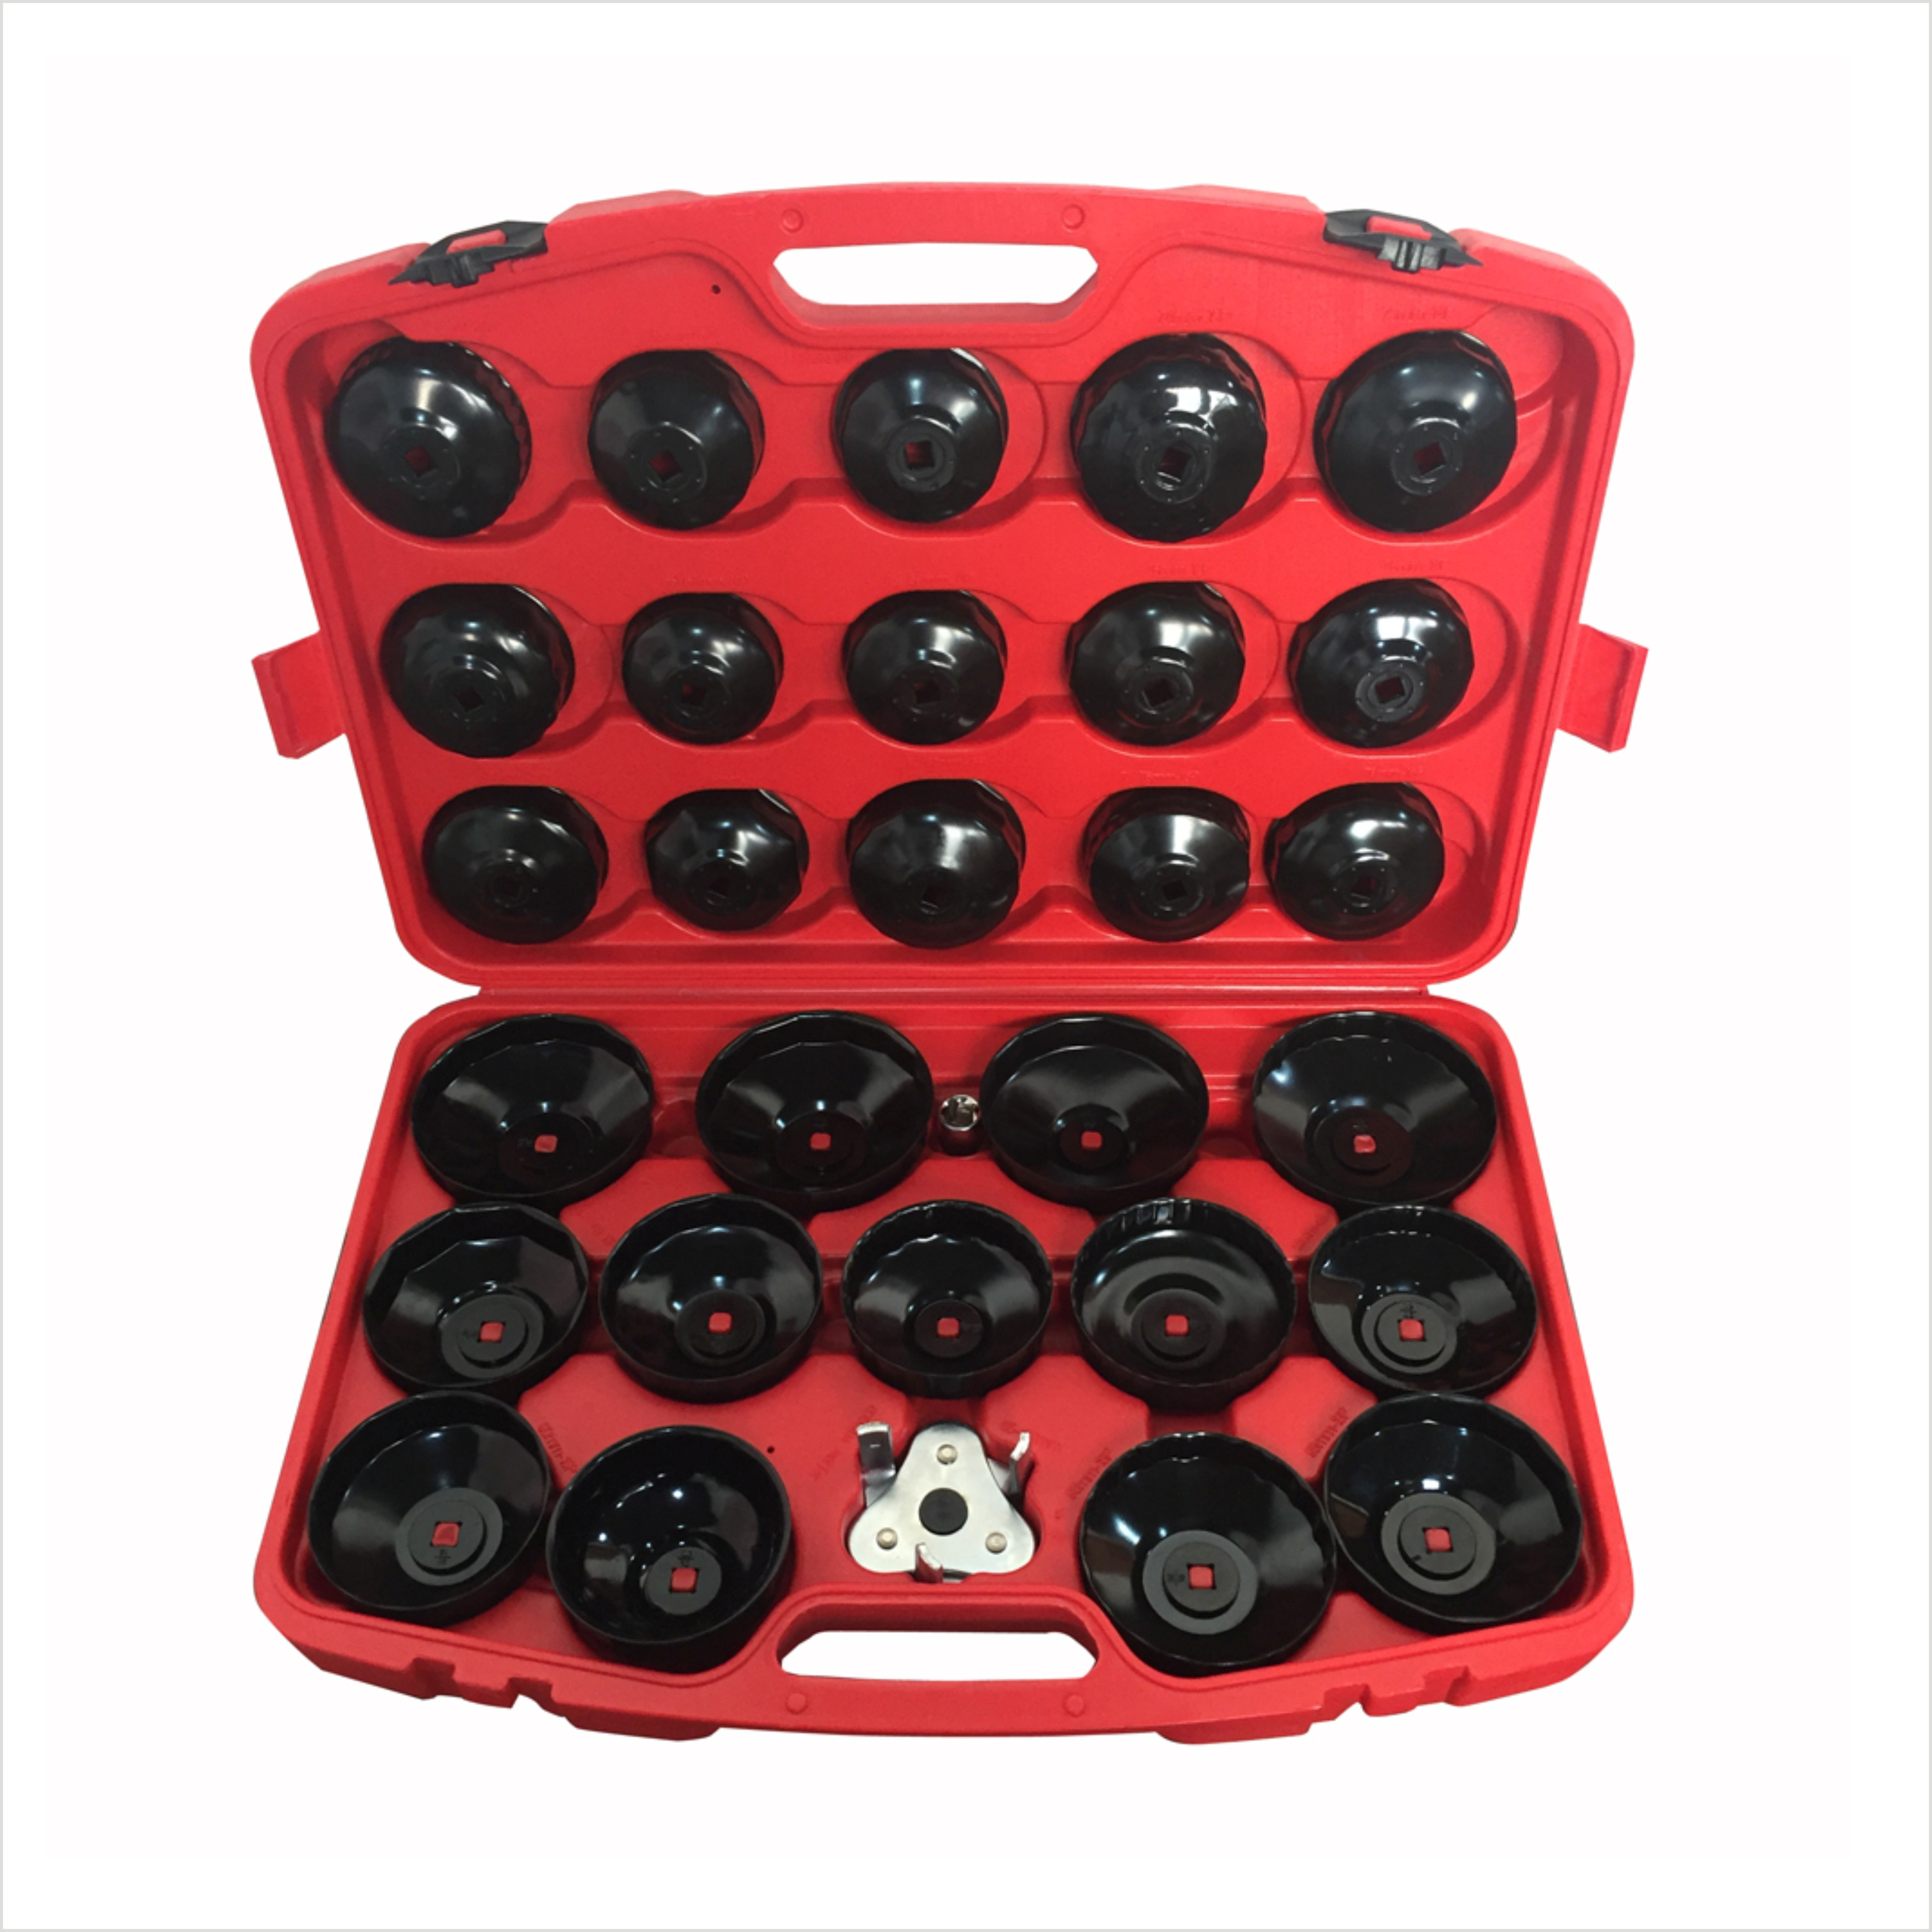 30pcs Oil Filter Cap Wrench Cup Socket Tool Set For Mercedes BMW VW Audi Volvo Ford 20pcs m3 m12 screw thread metric plugs taps tap wrench die wrench set